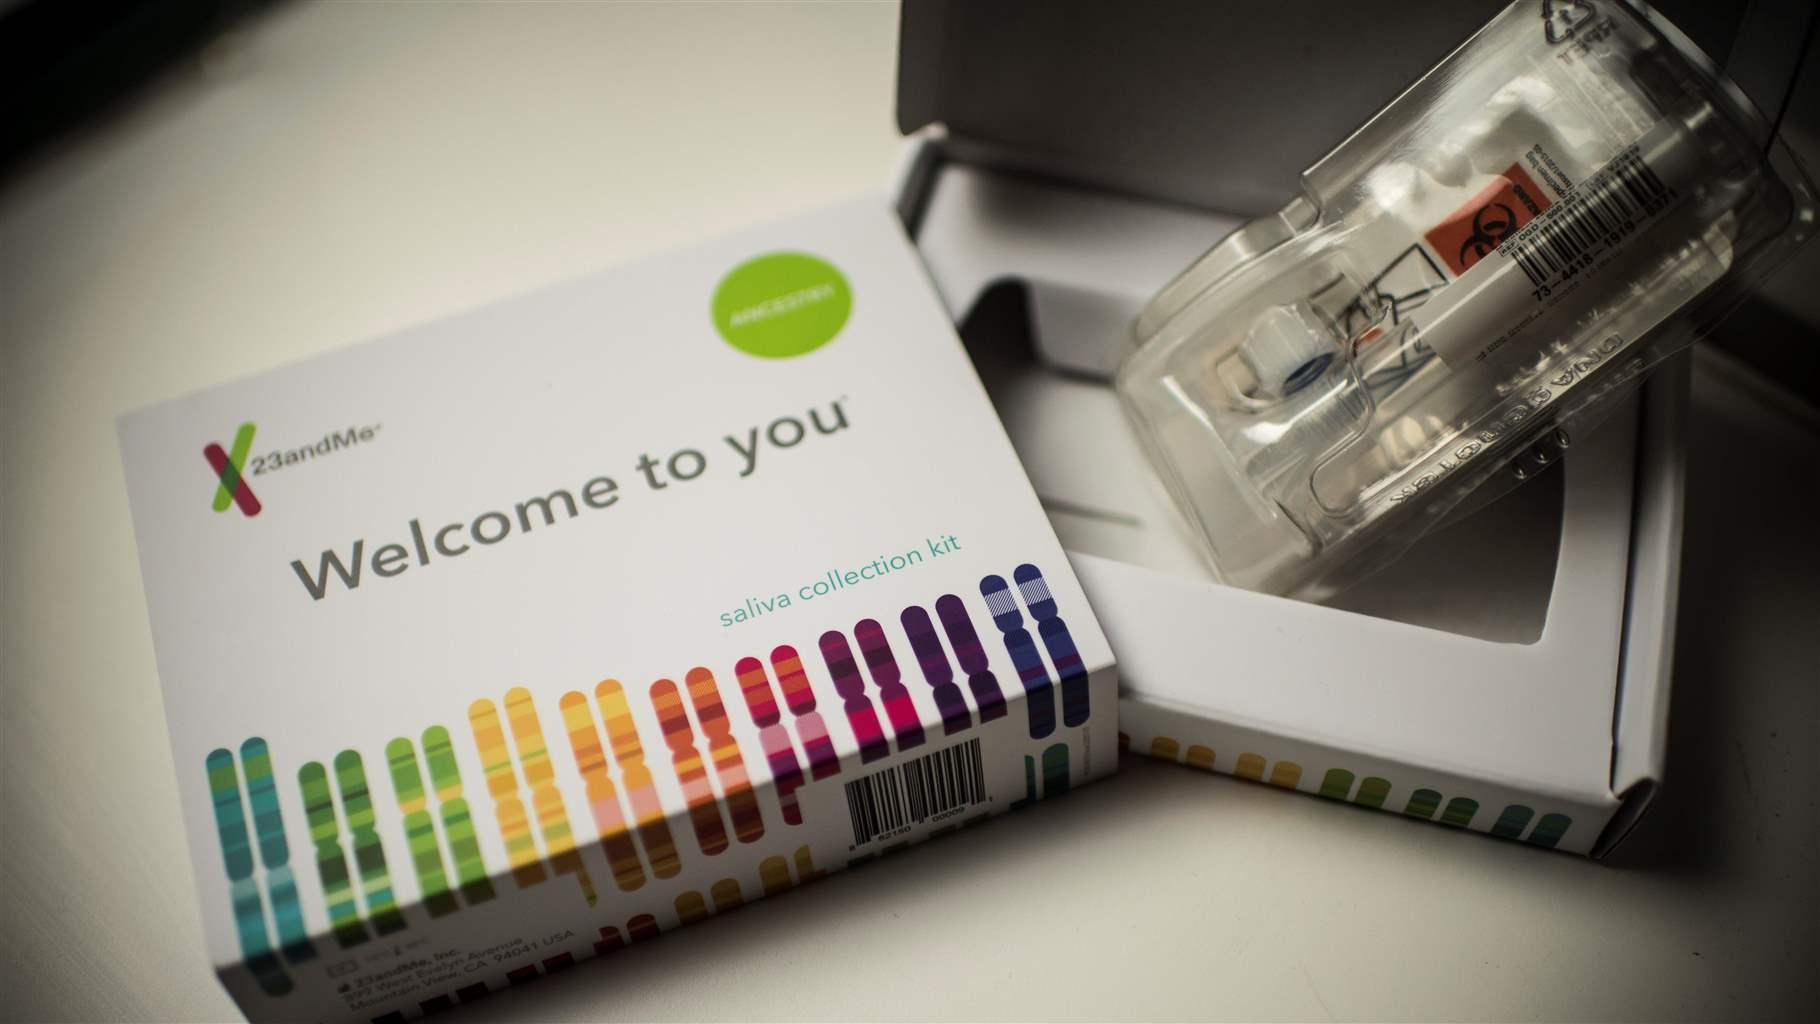 DNA Databases Are Boon to Police But Menace to Privacy, Critics Say